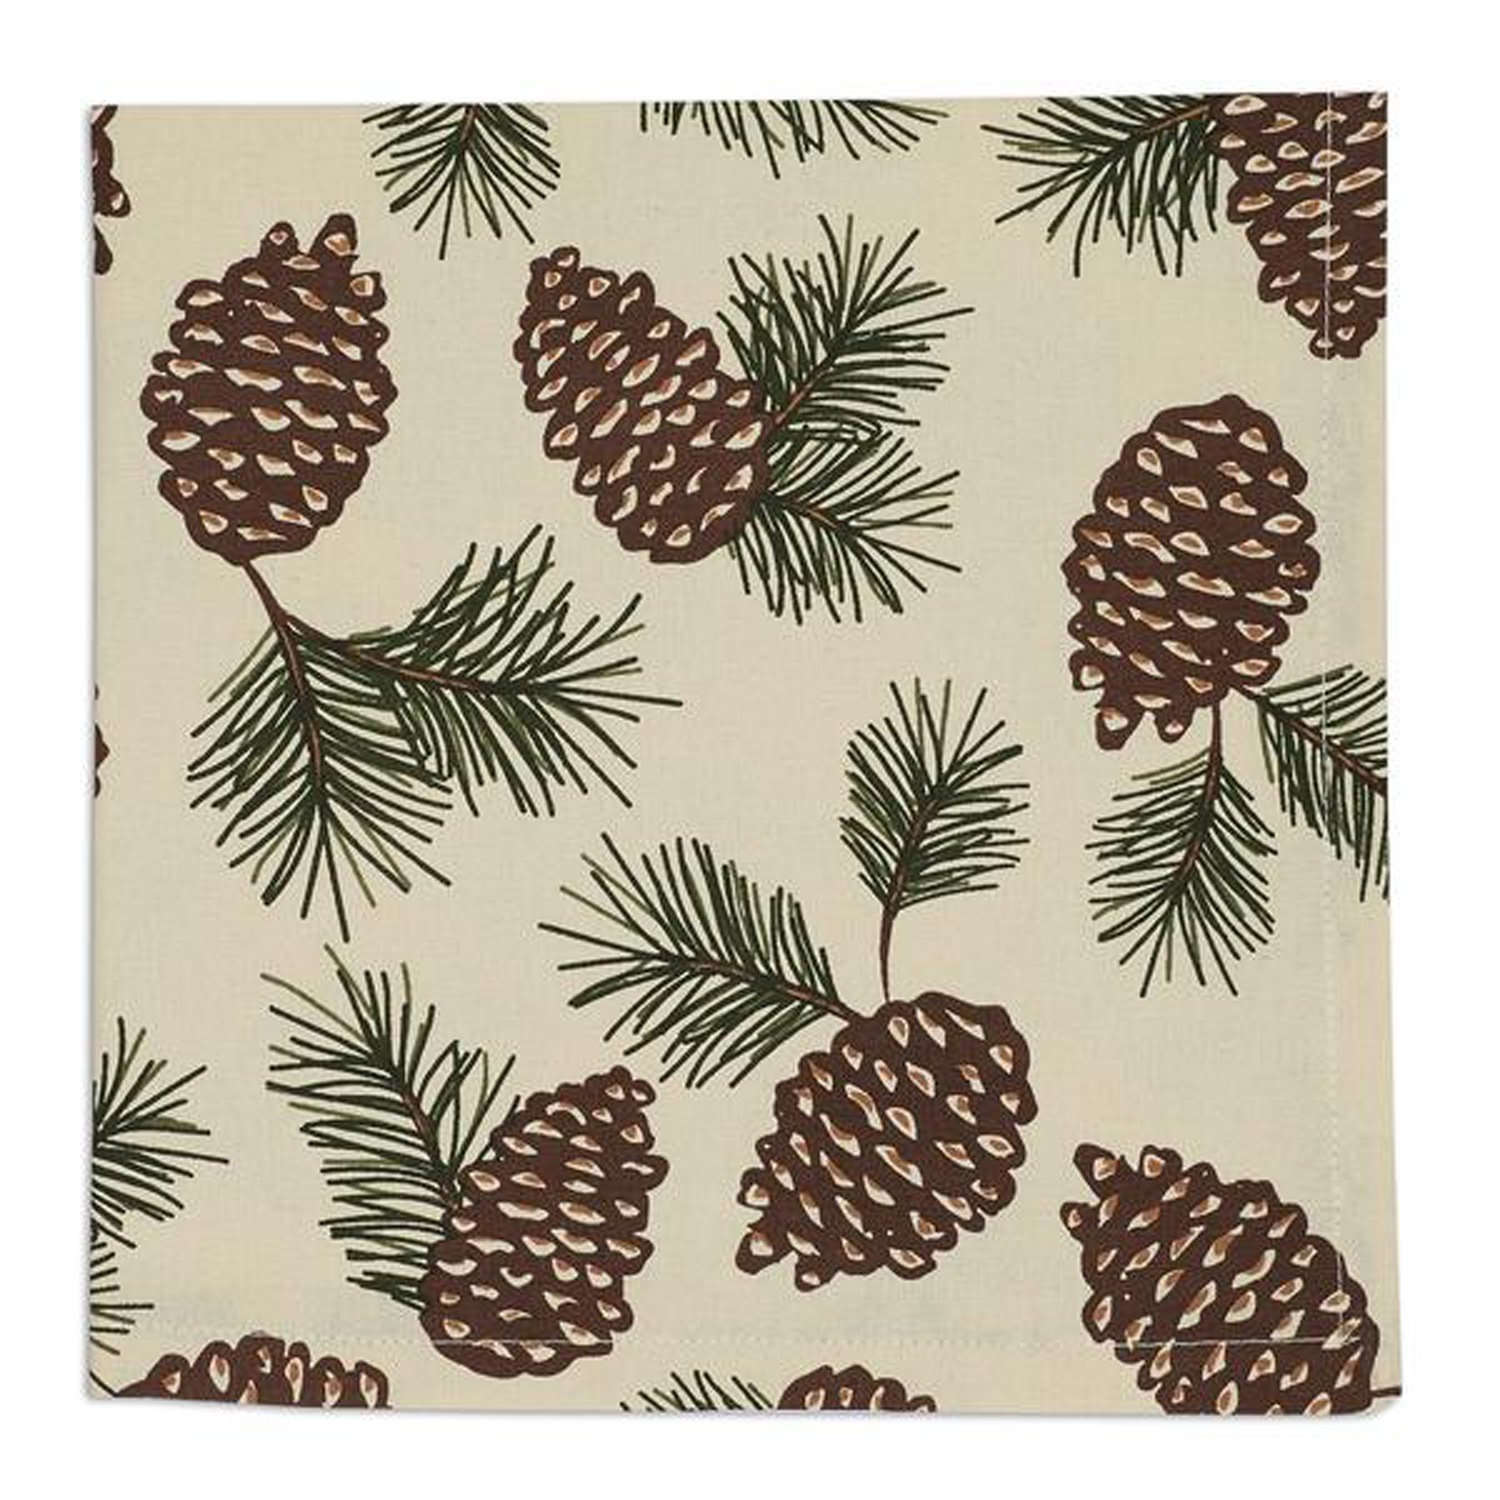 Design Imports Mountain Pine Cotton Table Linens, Napkin 20-Inch by 20-Inch, Pinecone Print by Design Imports